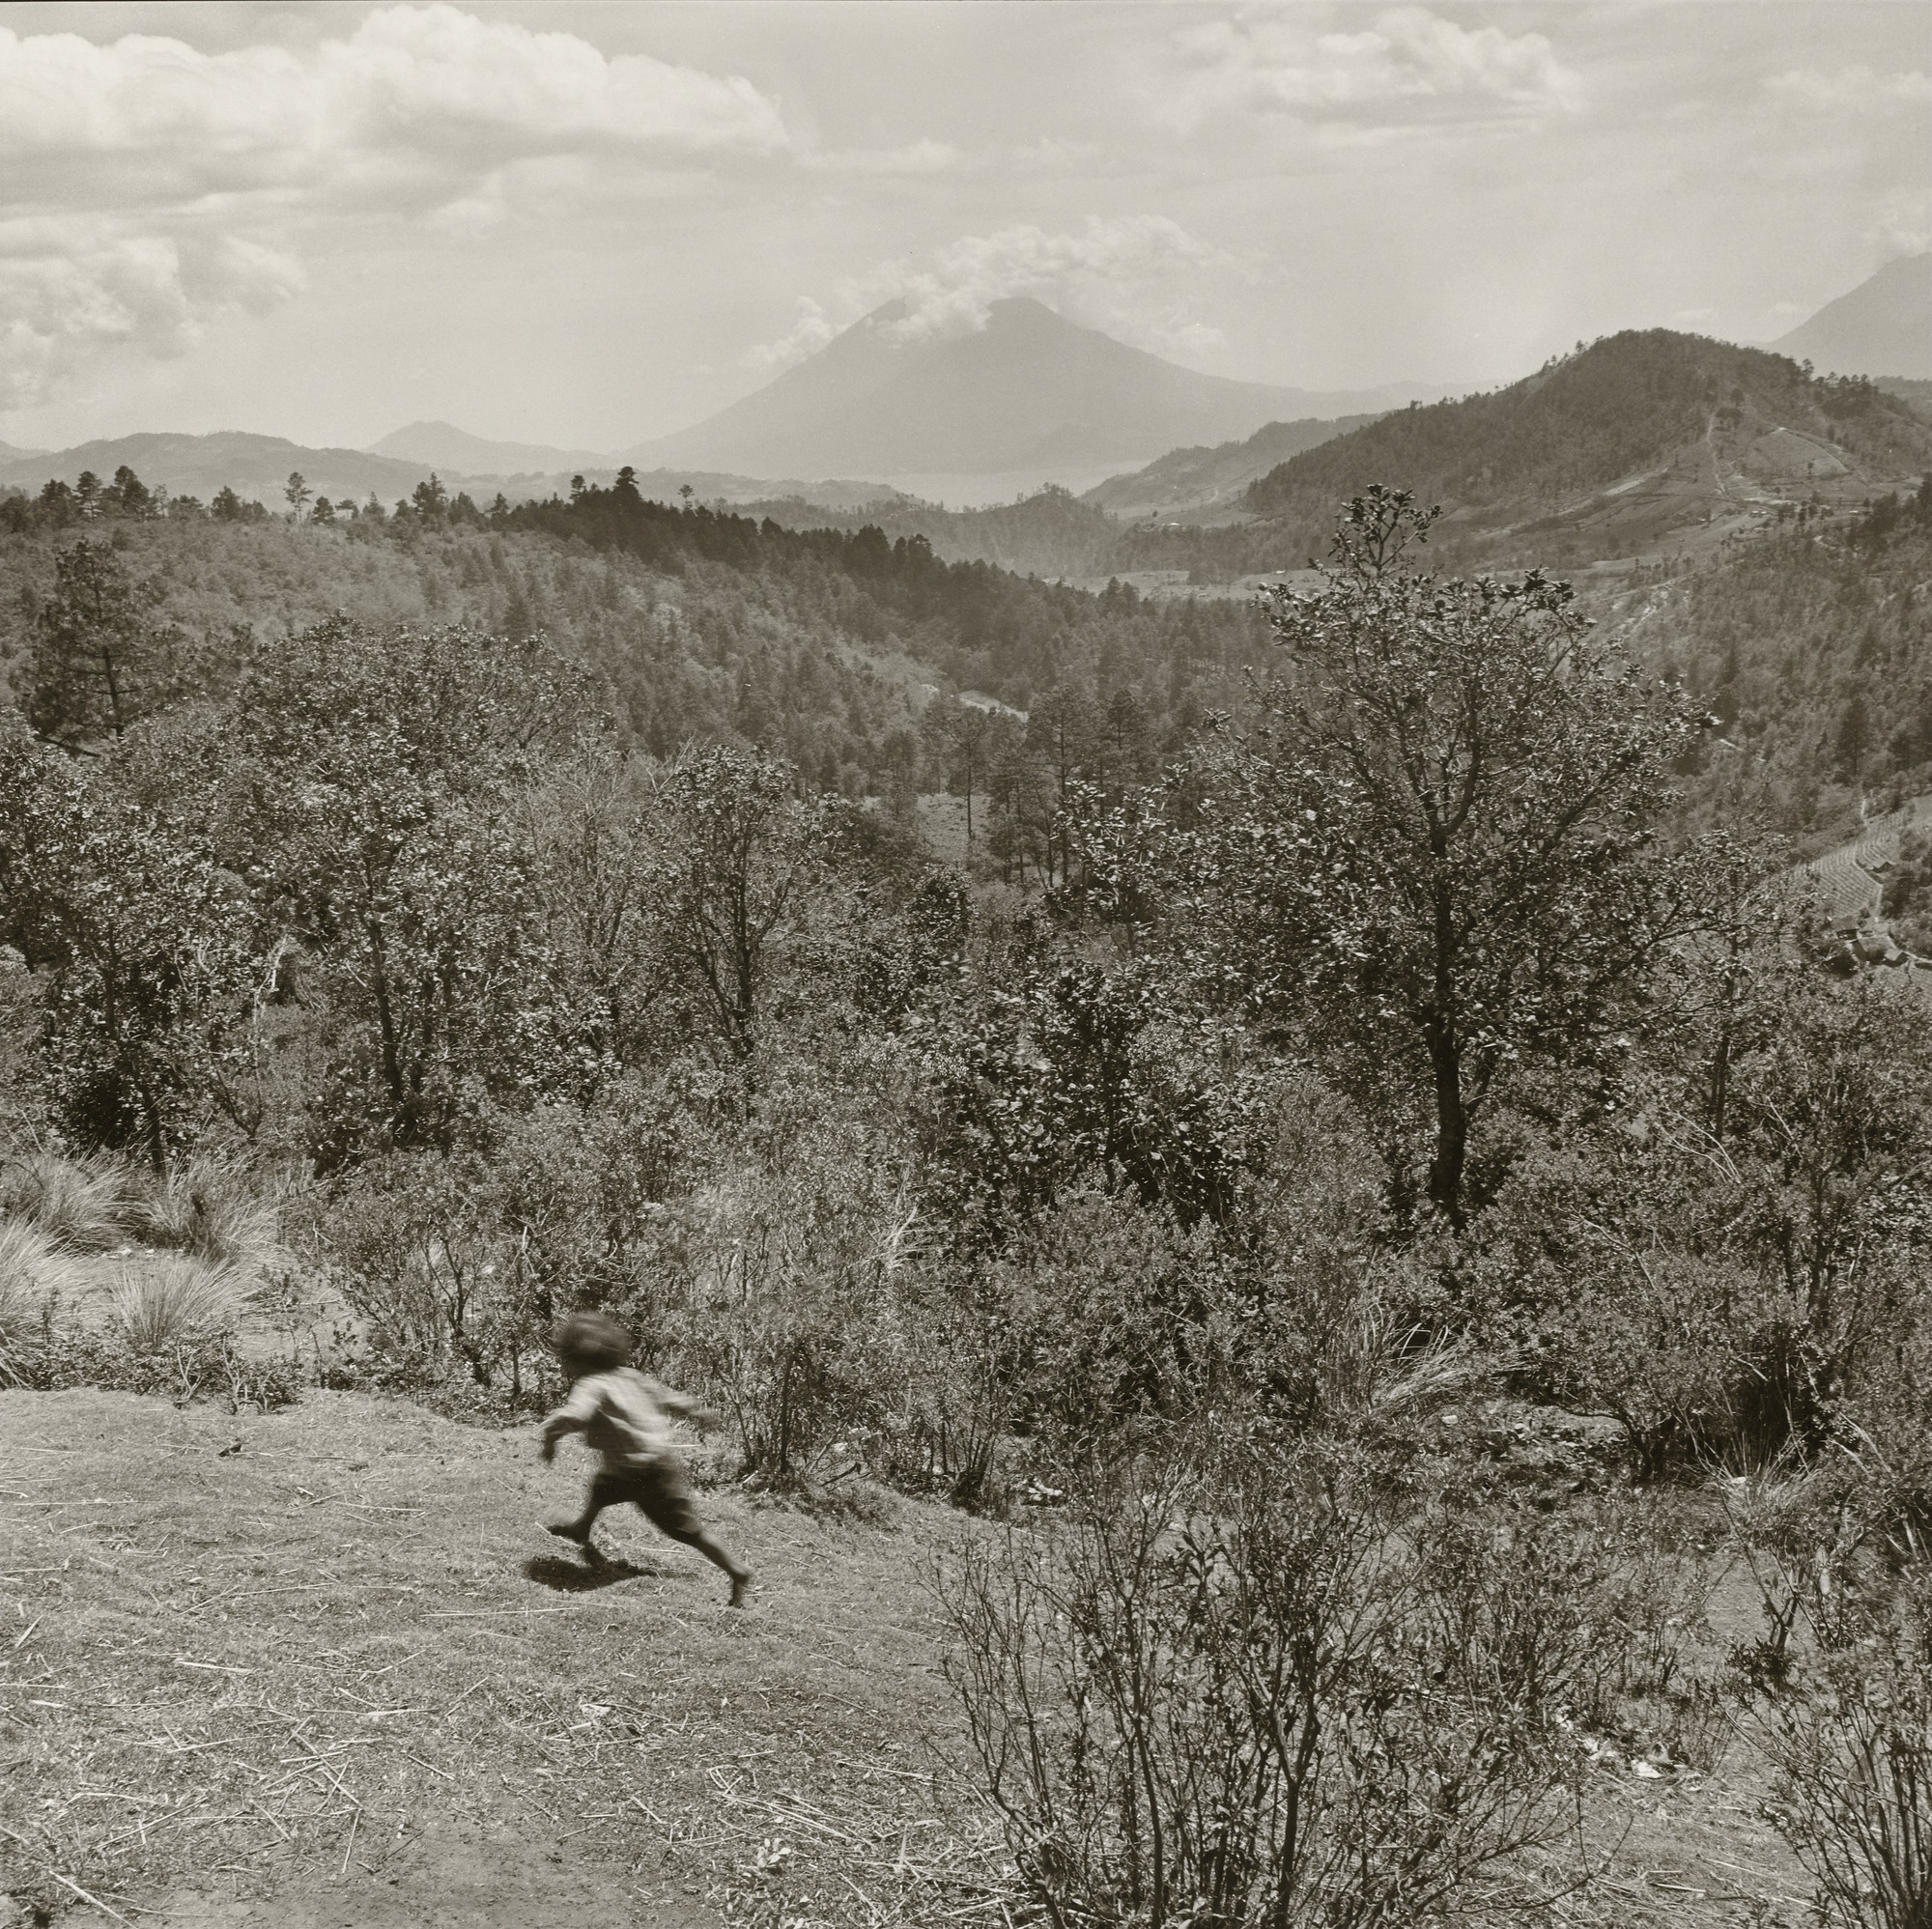 Rosalind Fox Solomon. Running Boy, Guatemala. 1978